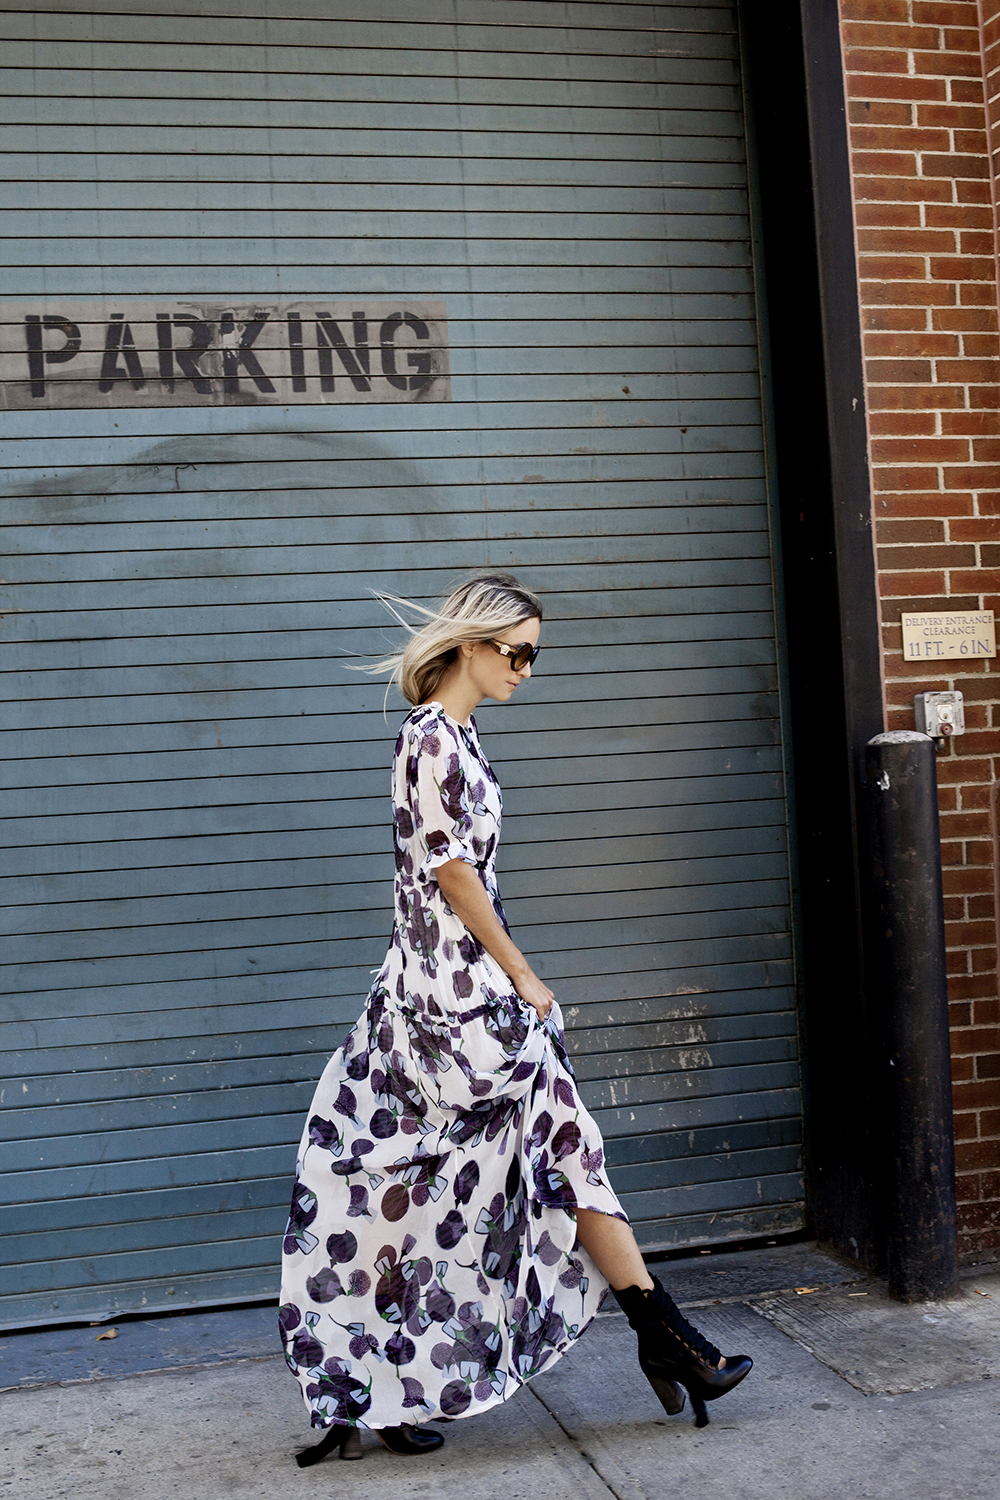 Charlotte Groeneveld looks effortlessly feminine in this gorgeous floral printed maxi dress, worn with edgy black ankle boots and classic sunnies. We love this look for when summer comes round! Dress: Baum und Pferdgarten SS16, Bag/Boots: Chloe.